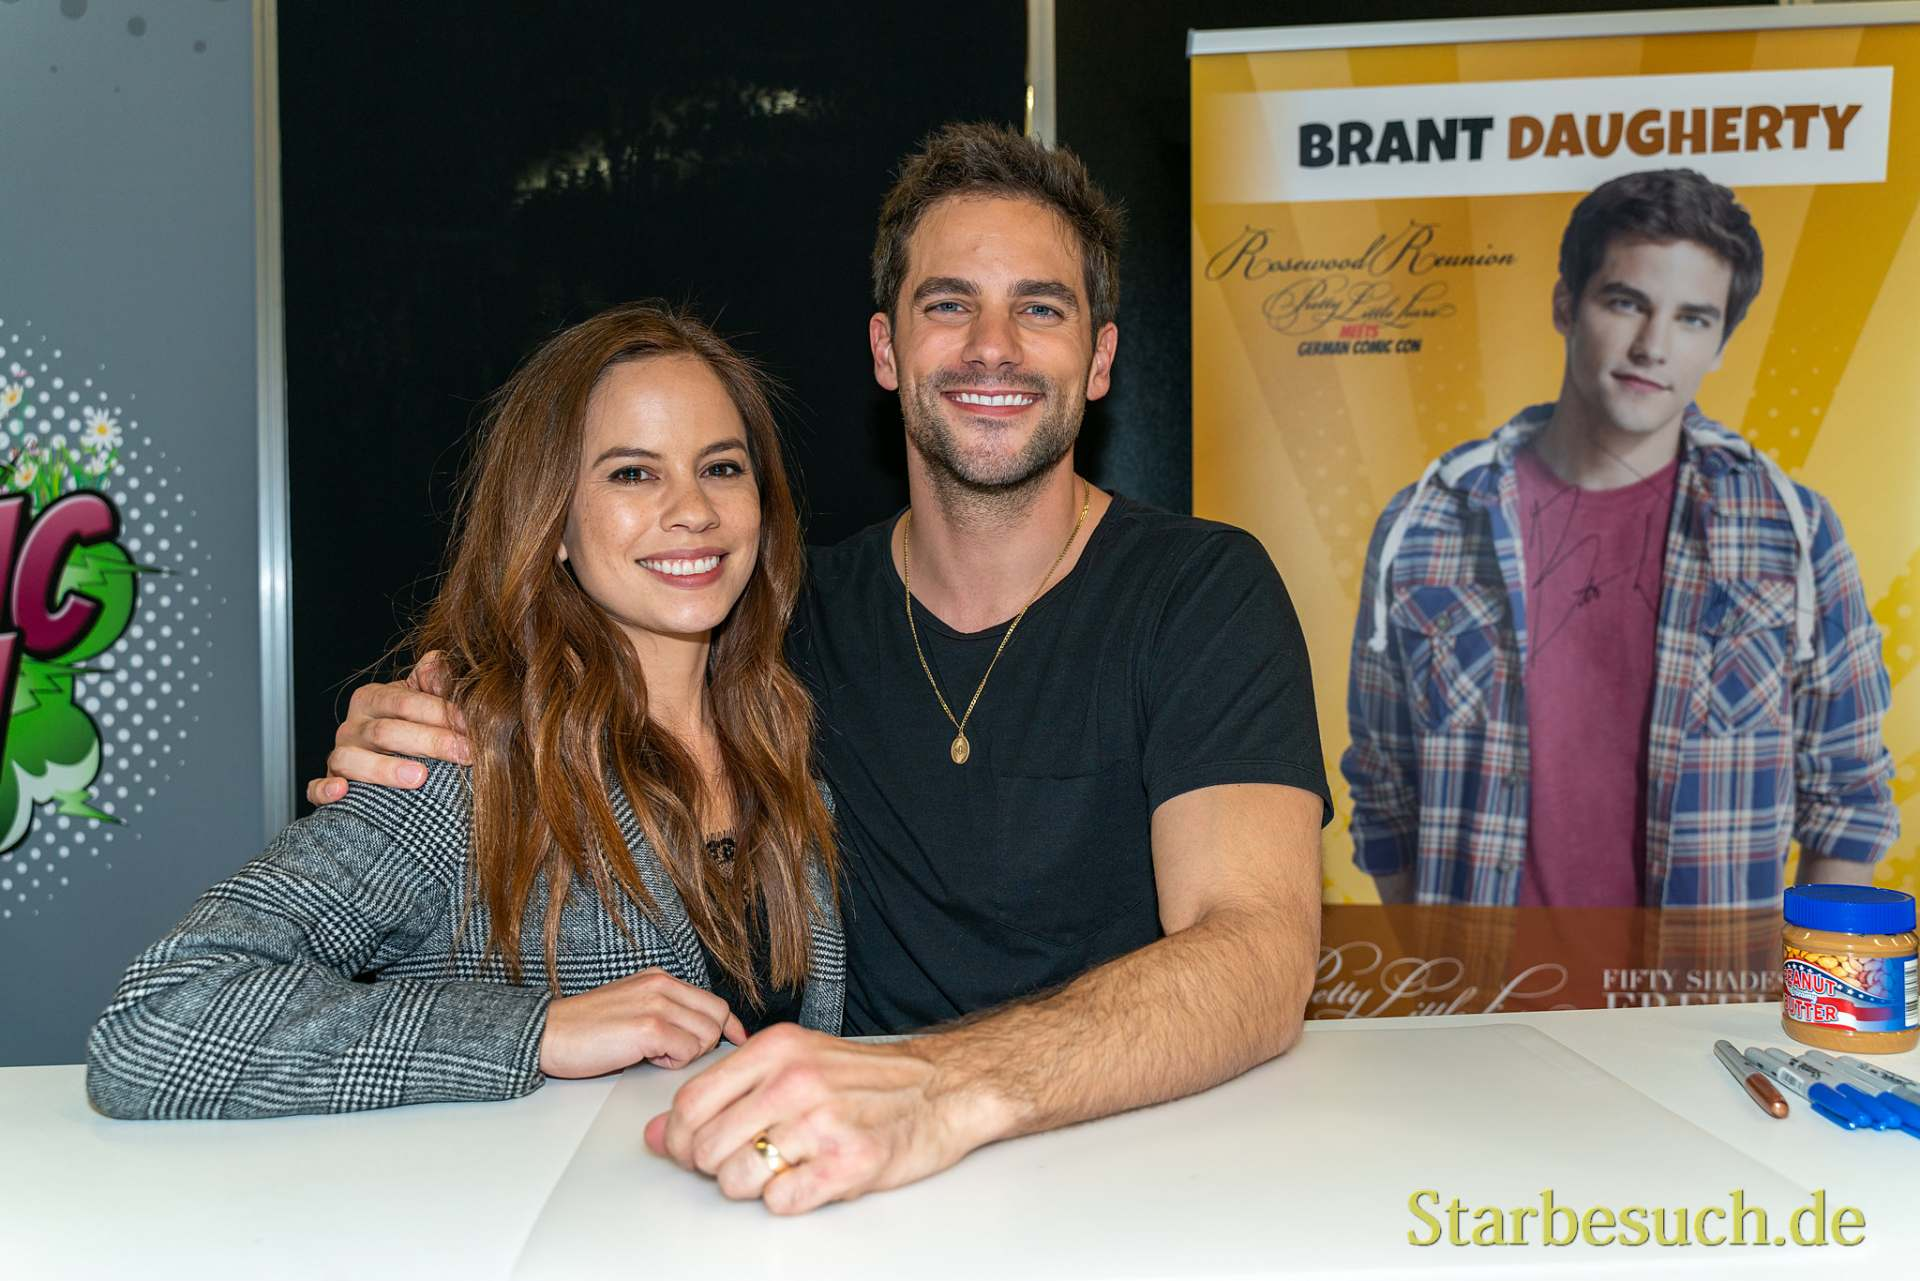 DORTMUND, GERMANY - December 8th 2019: Kimberly Daugherty and Brant Daugherty at German Comic Con Dortmund